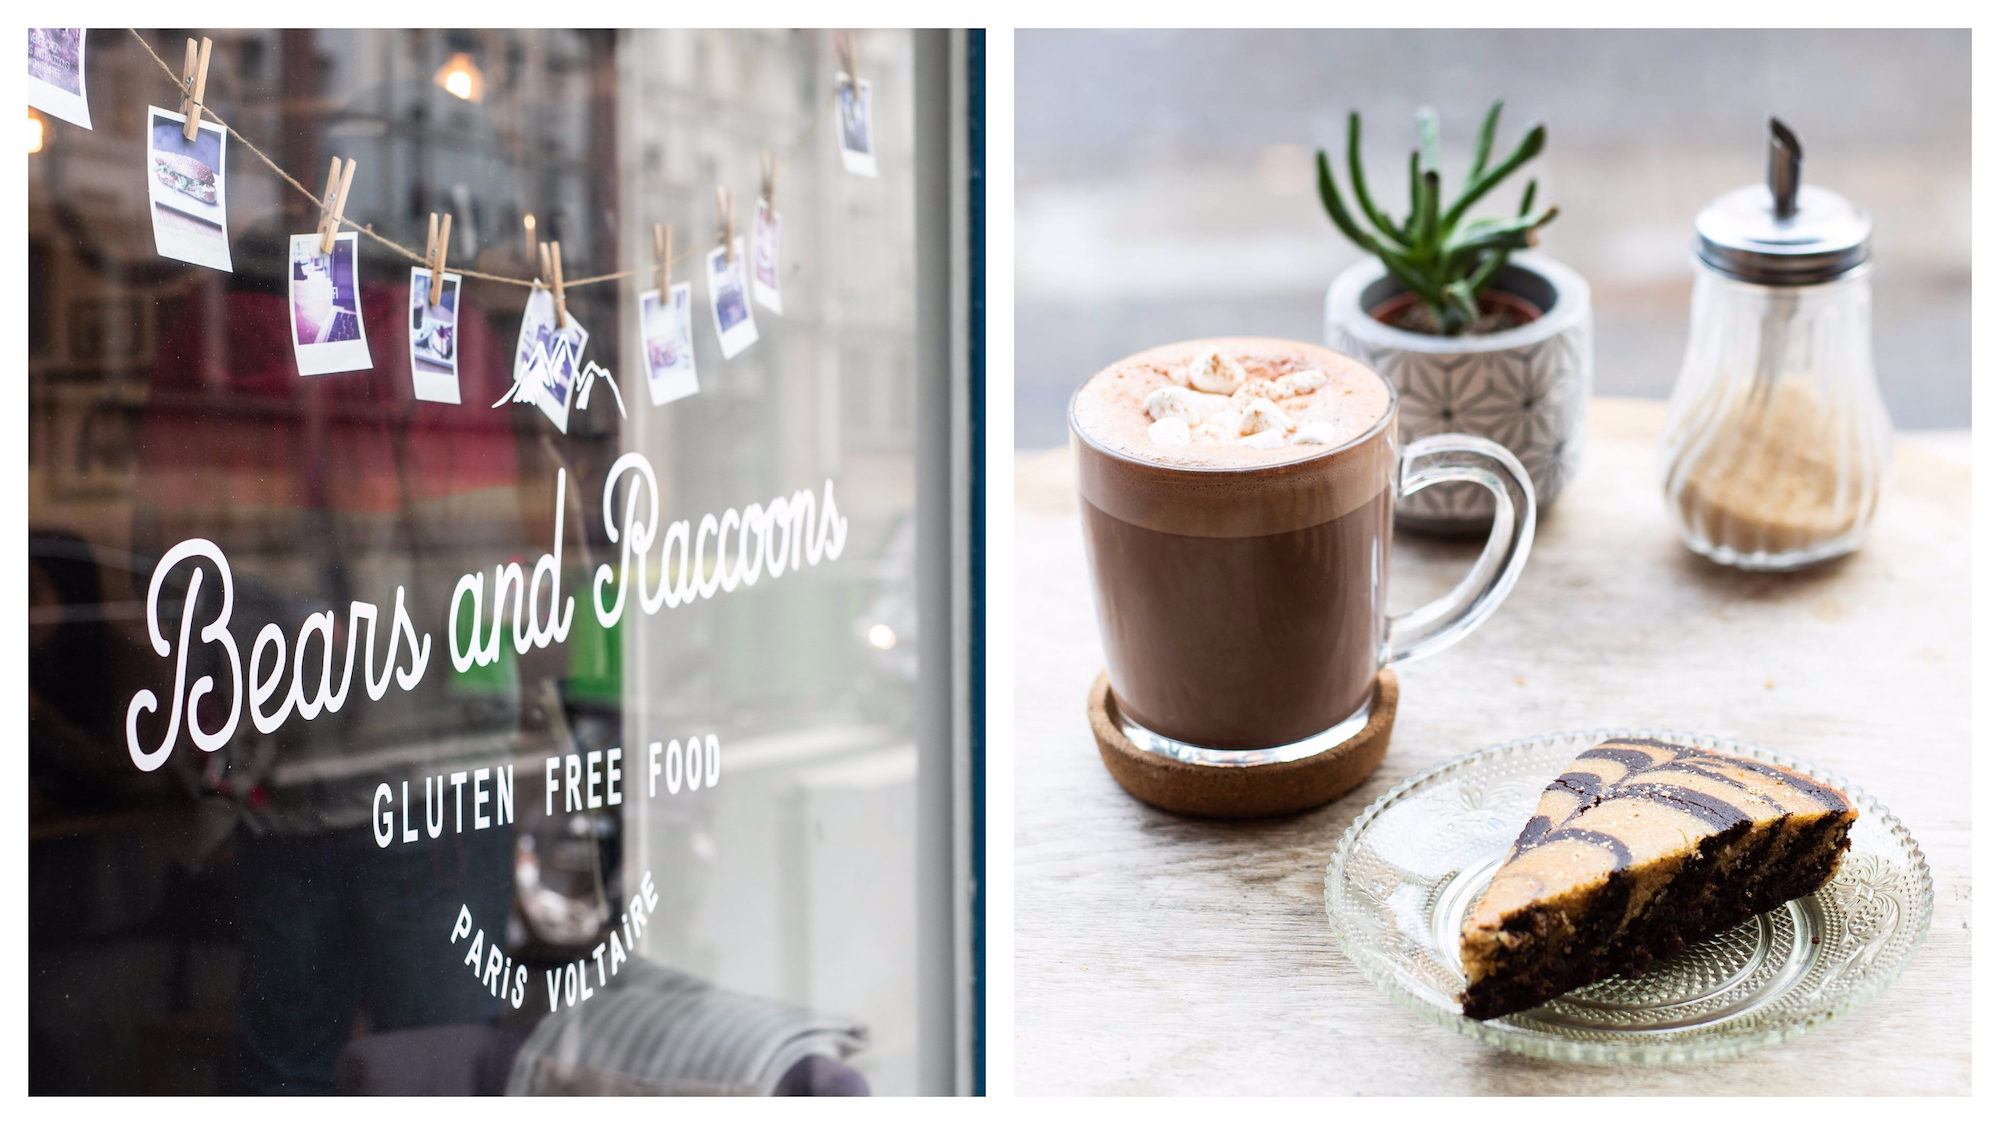 The best gluten-free lunch spots in Paris, including Bears and Racoons which offers delicious hot chocolate and cakes.